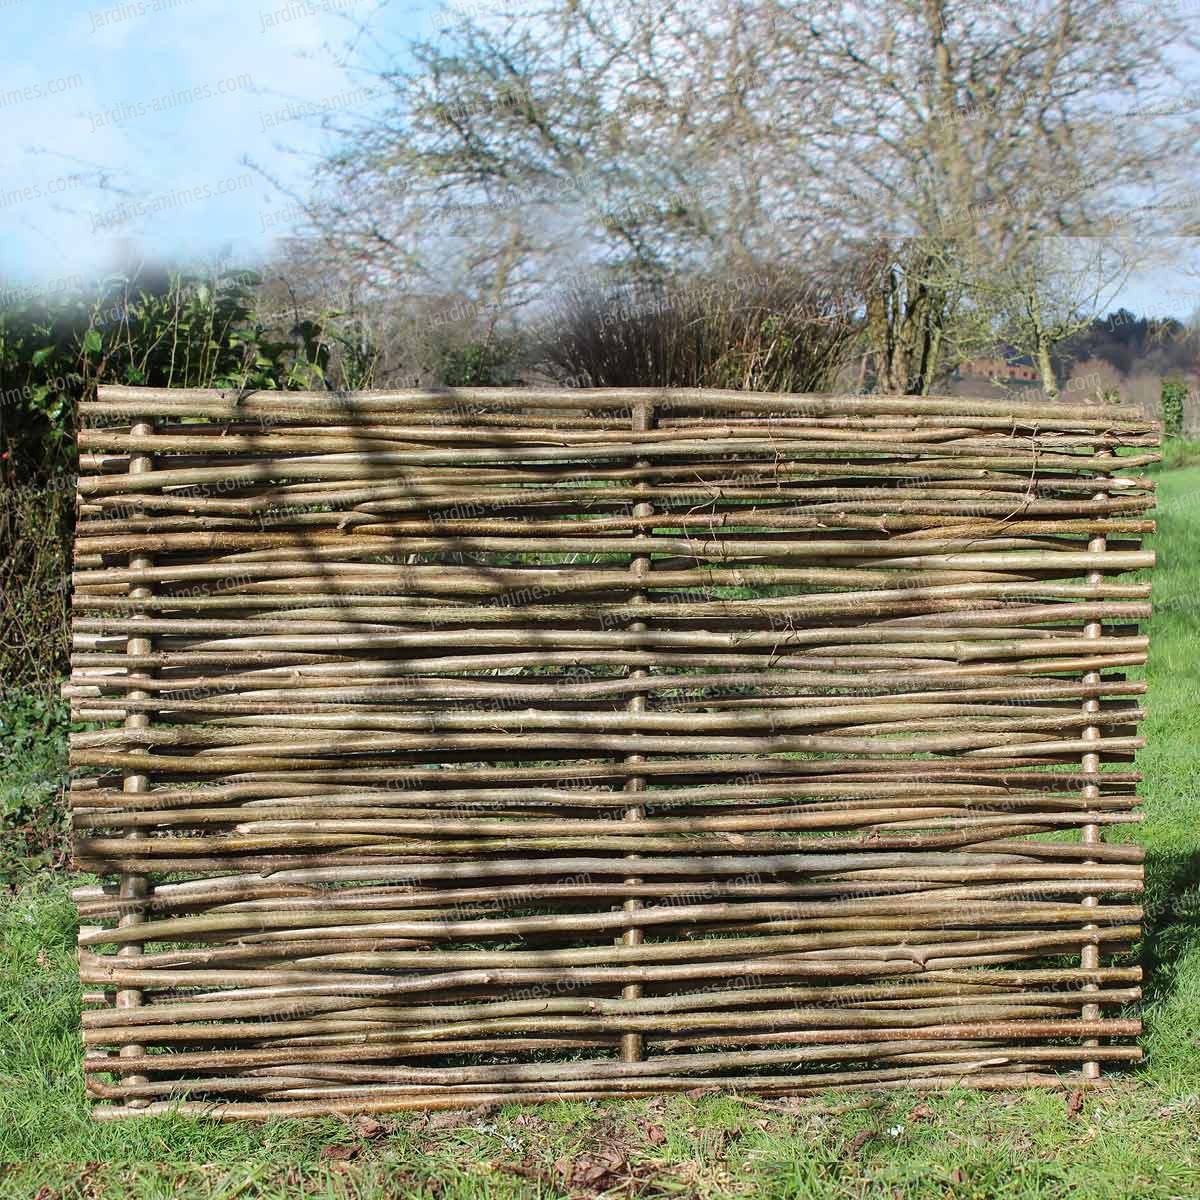 Barri re noisetier tressage horizontal cloture et - Barrieres de jardin en bois ...